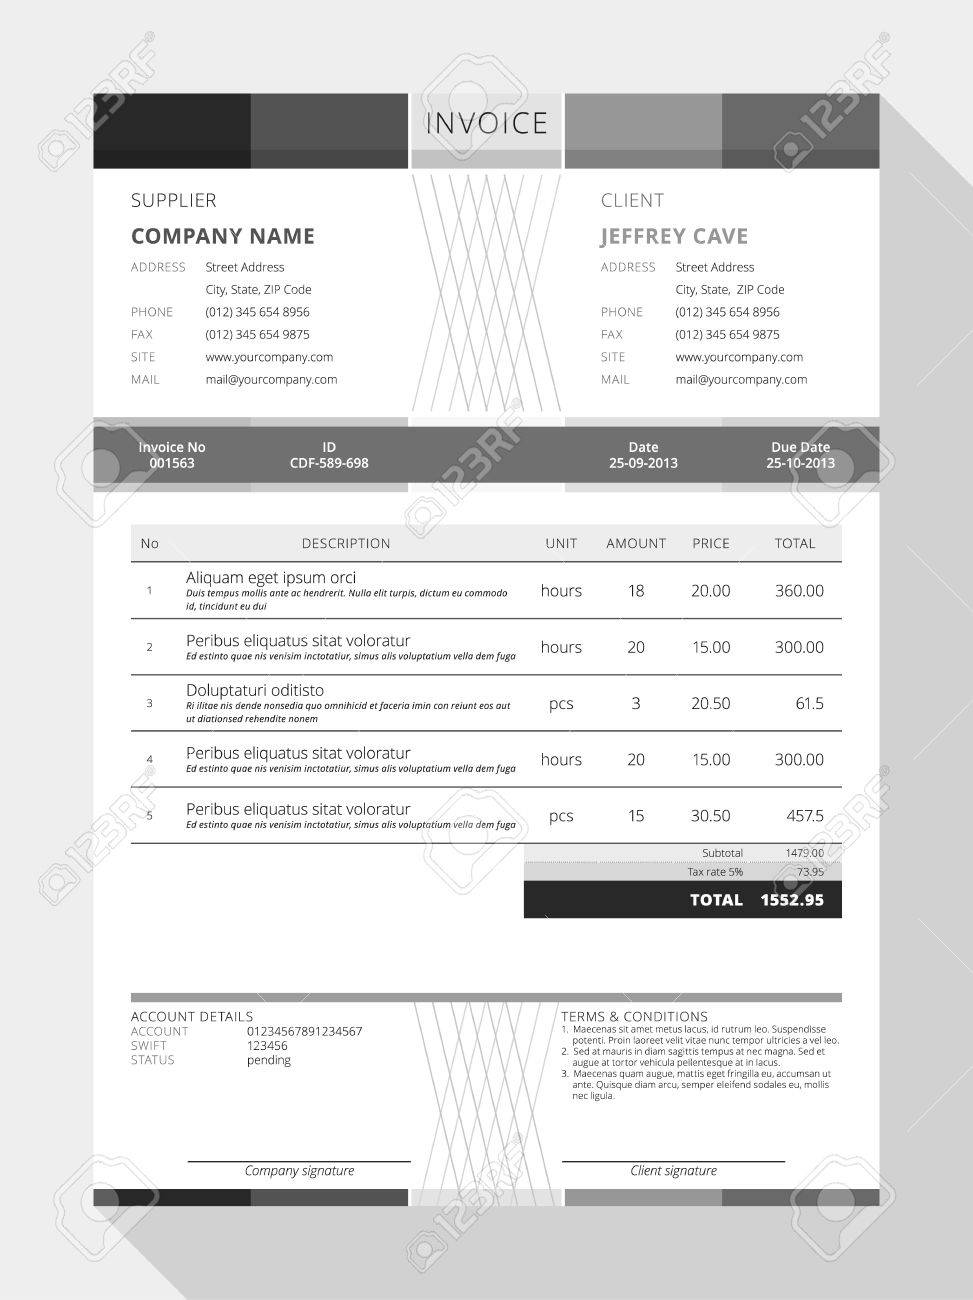 Hucareus  Outstanding Design An Invoice  Professional Graphic Design Invoice  With Great Vector Customizable Invoice Form Template Design Vector   Design An Invoice With Endearing Gift In Kind Receipt Also Burger King Receipt In Addition Free Payment Receipt Template And Return Receipt Request As Well As Harbor Freight Return Policy Without Receipt Additionally Personal Property Tax Receipt St Louis County From Happytomco With Hucareus  Great Design An Invoice  Professional Graphic Design Invoice  With Endearing Vector Customizable Invoice Form Template Design Vector   Design An Invoice And Outstanding Gift In Kind Receipt Also Burger King Receipt In Addition Free Payment Receipt Template From Happytomco